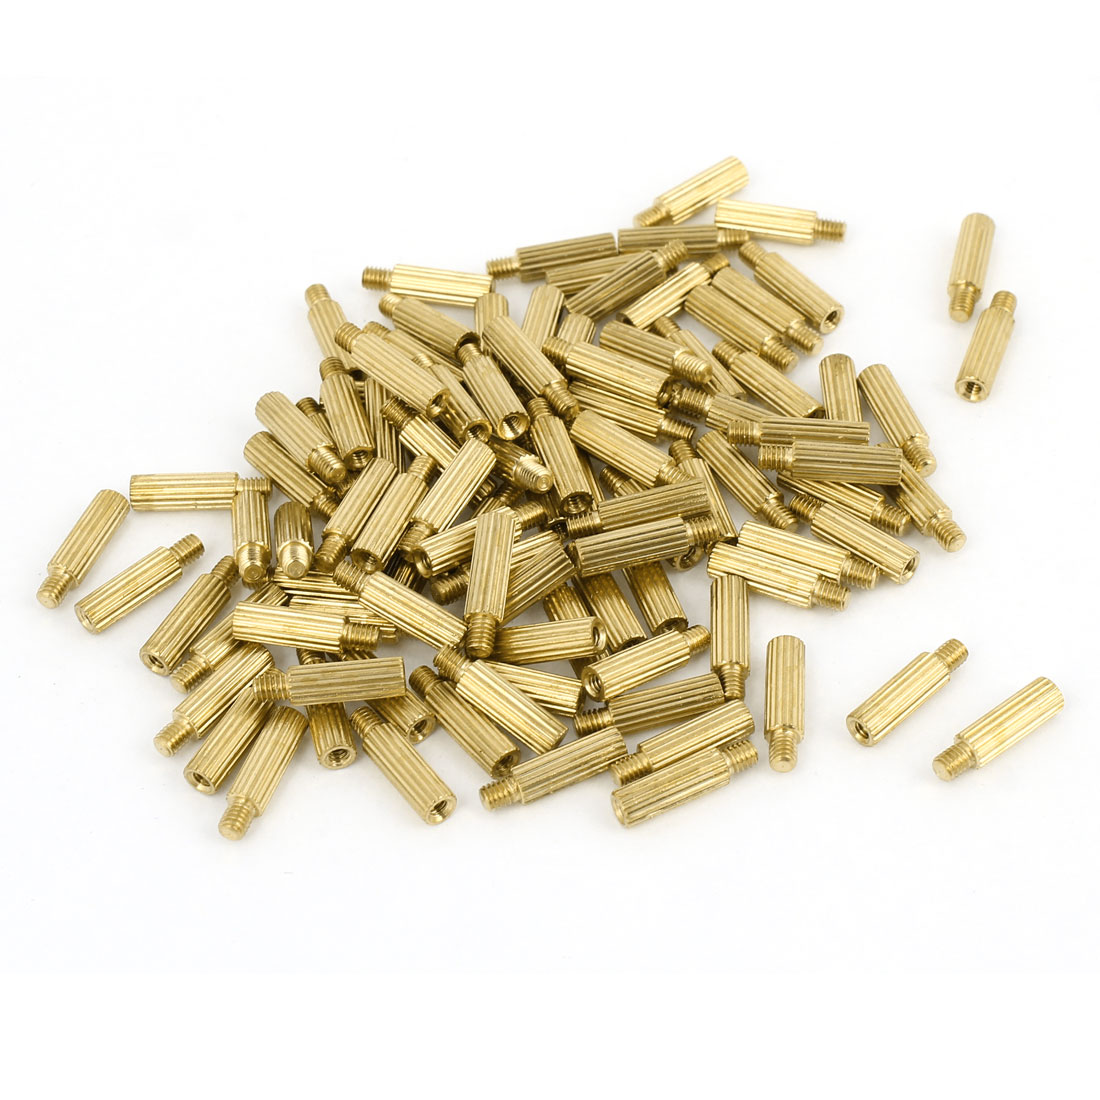 100Pcs Male to Female Thread Grooved Brass Pillars Standoff M2x10mm